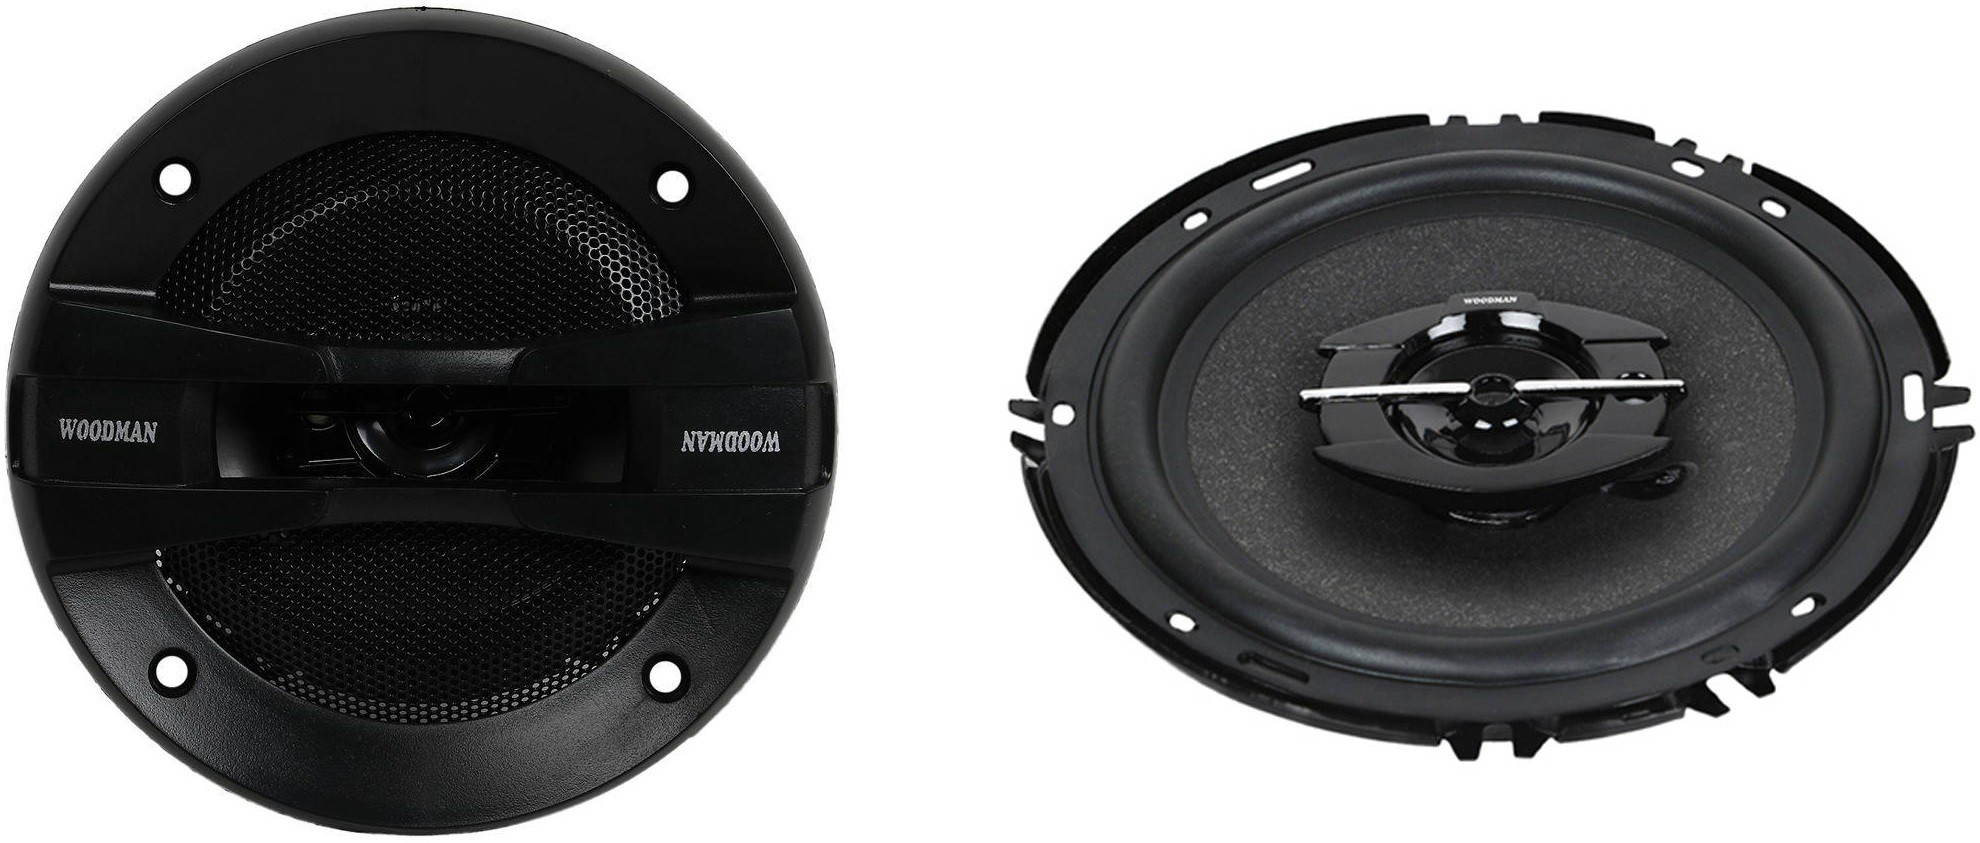 Deals | Additional 5% Off From Woodman, JBL and more